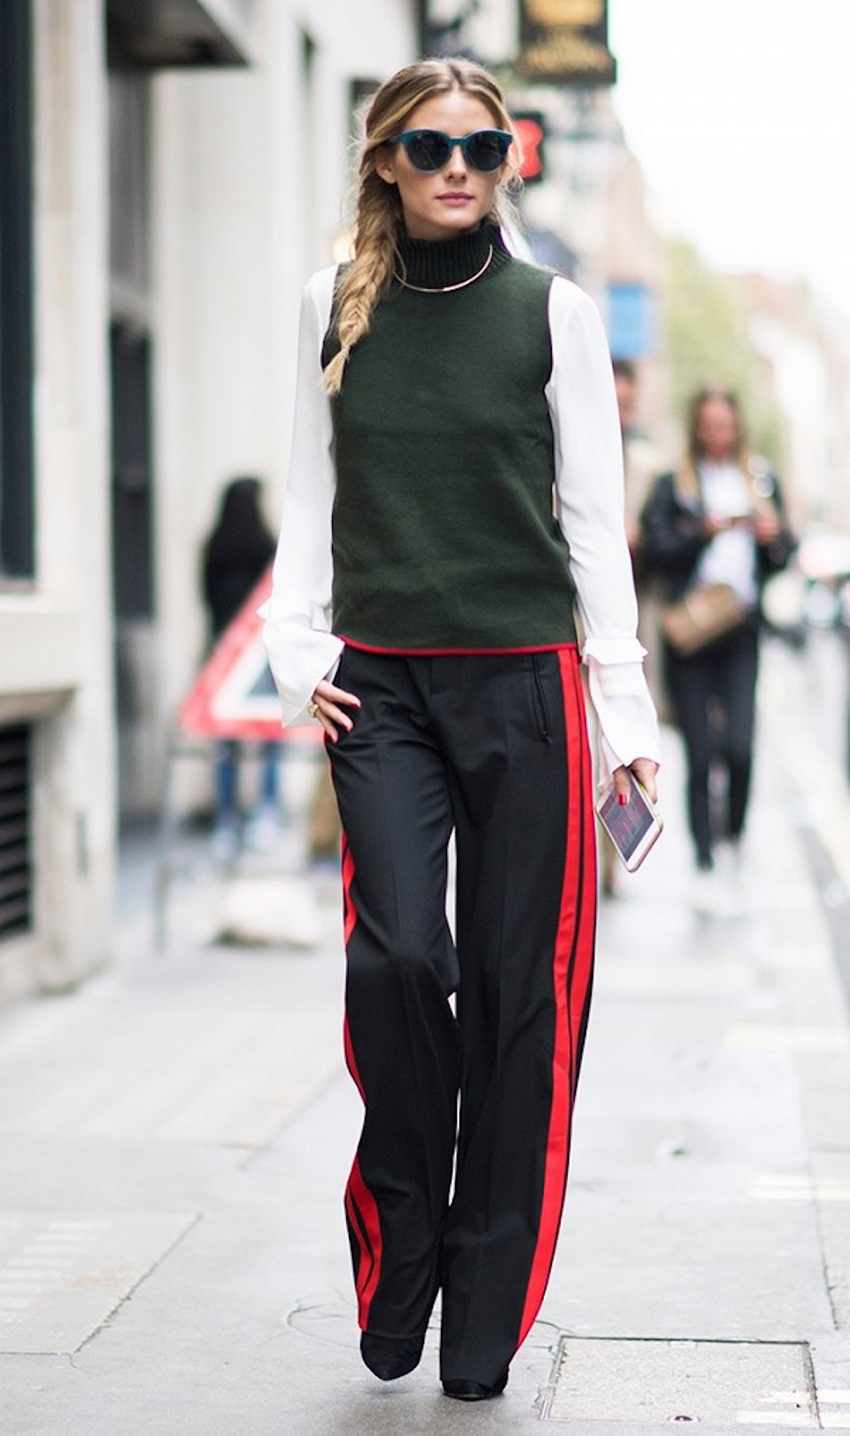 olivia_palermo_look_casual_track_pants